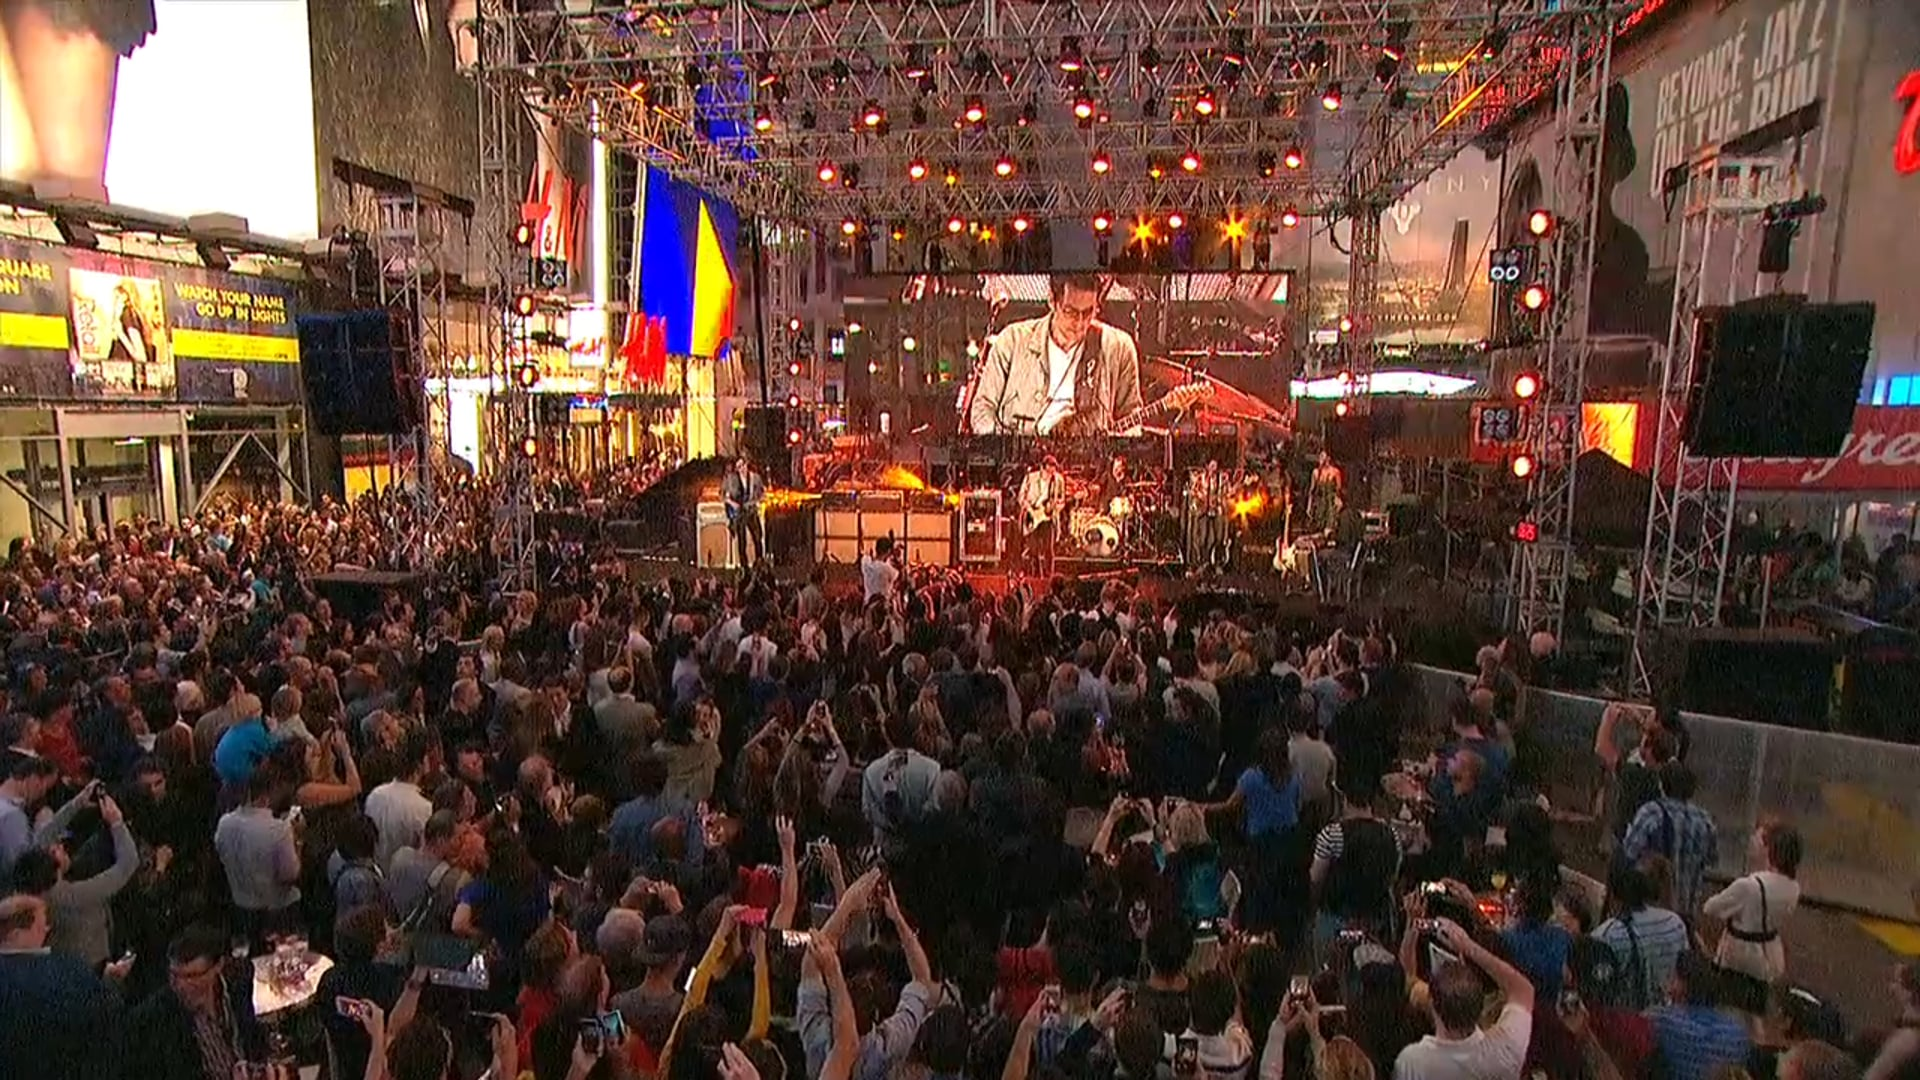 The Rock N Rio Times Square Popup concert featuring John Mayer